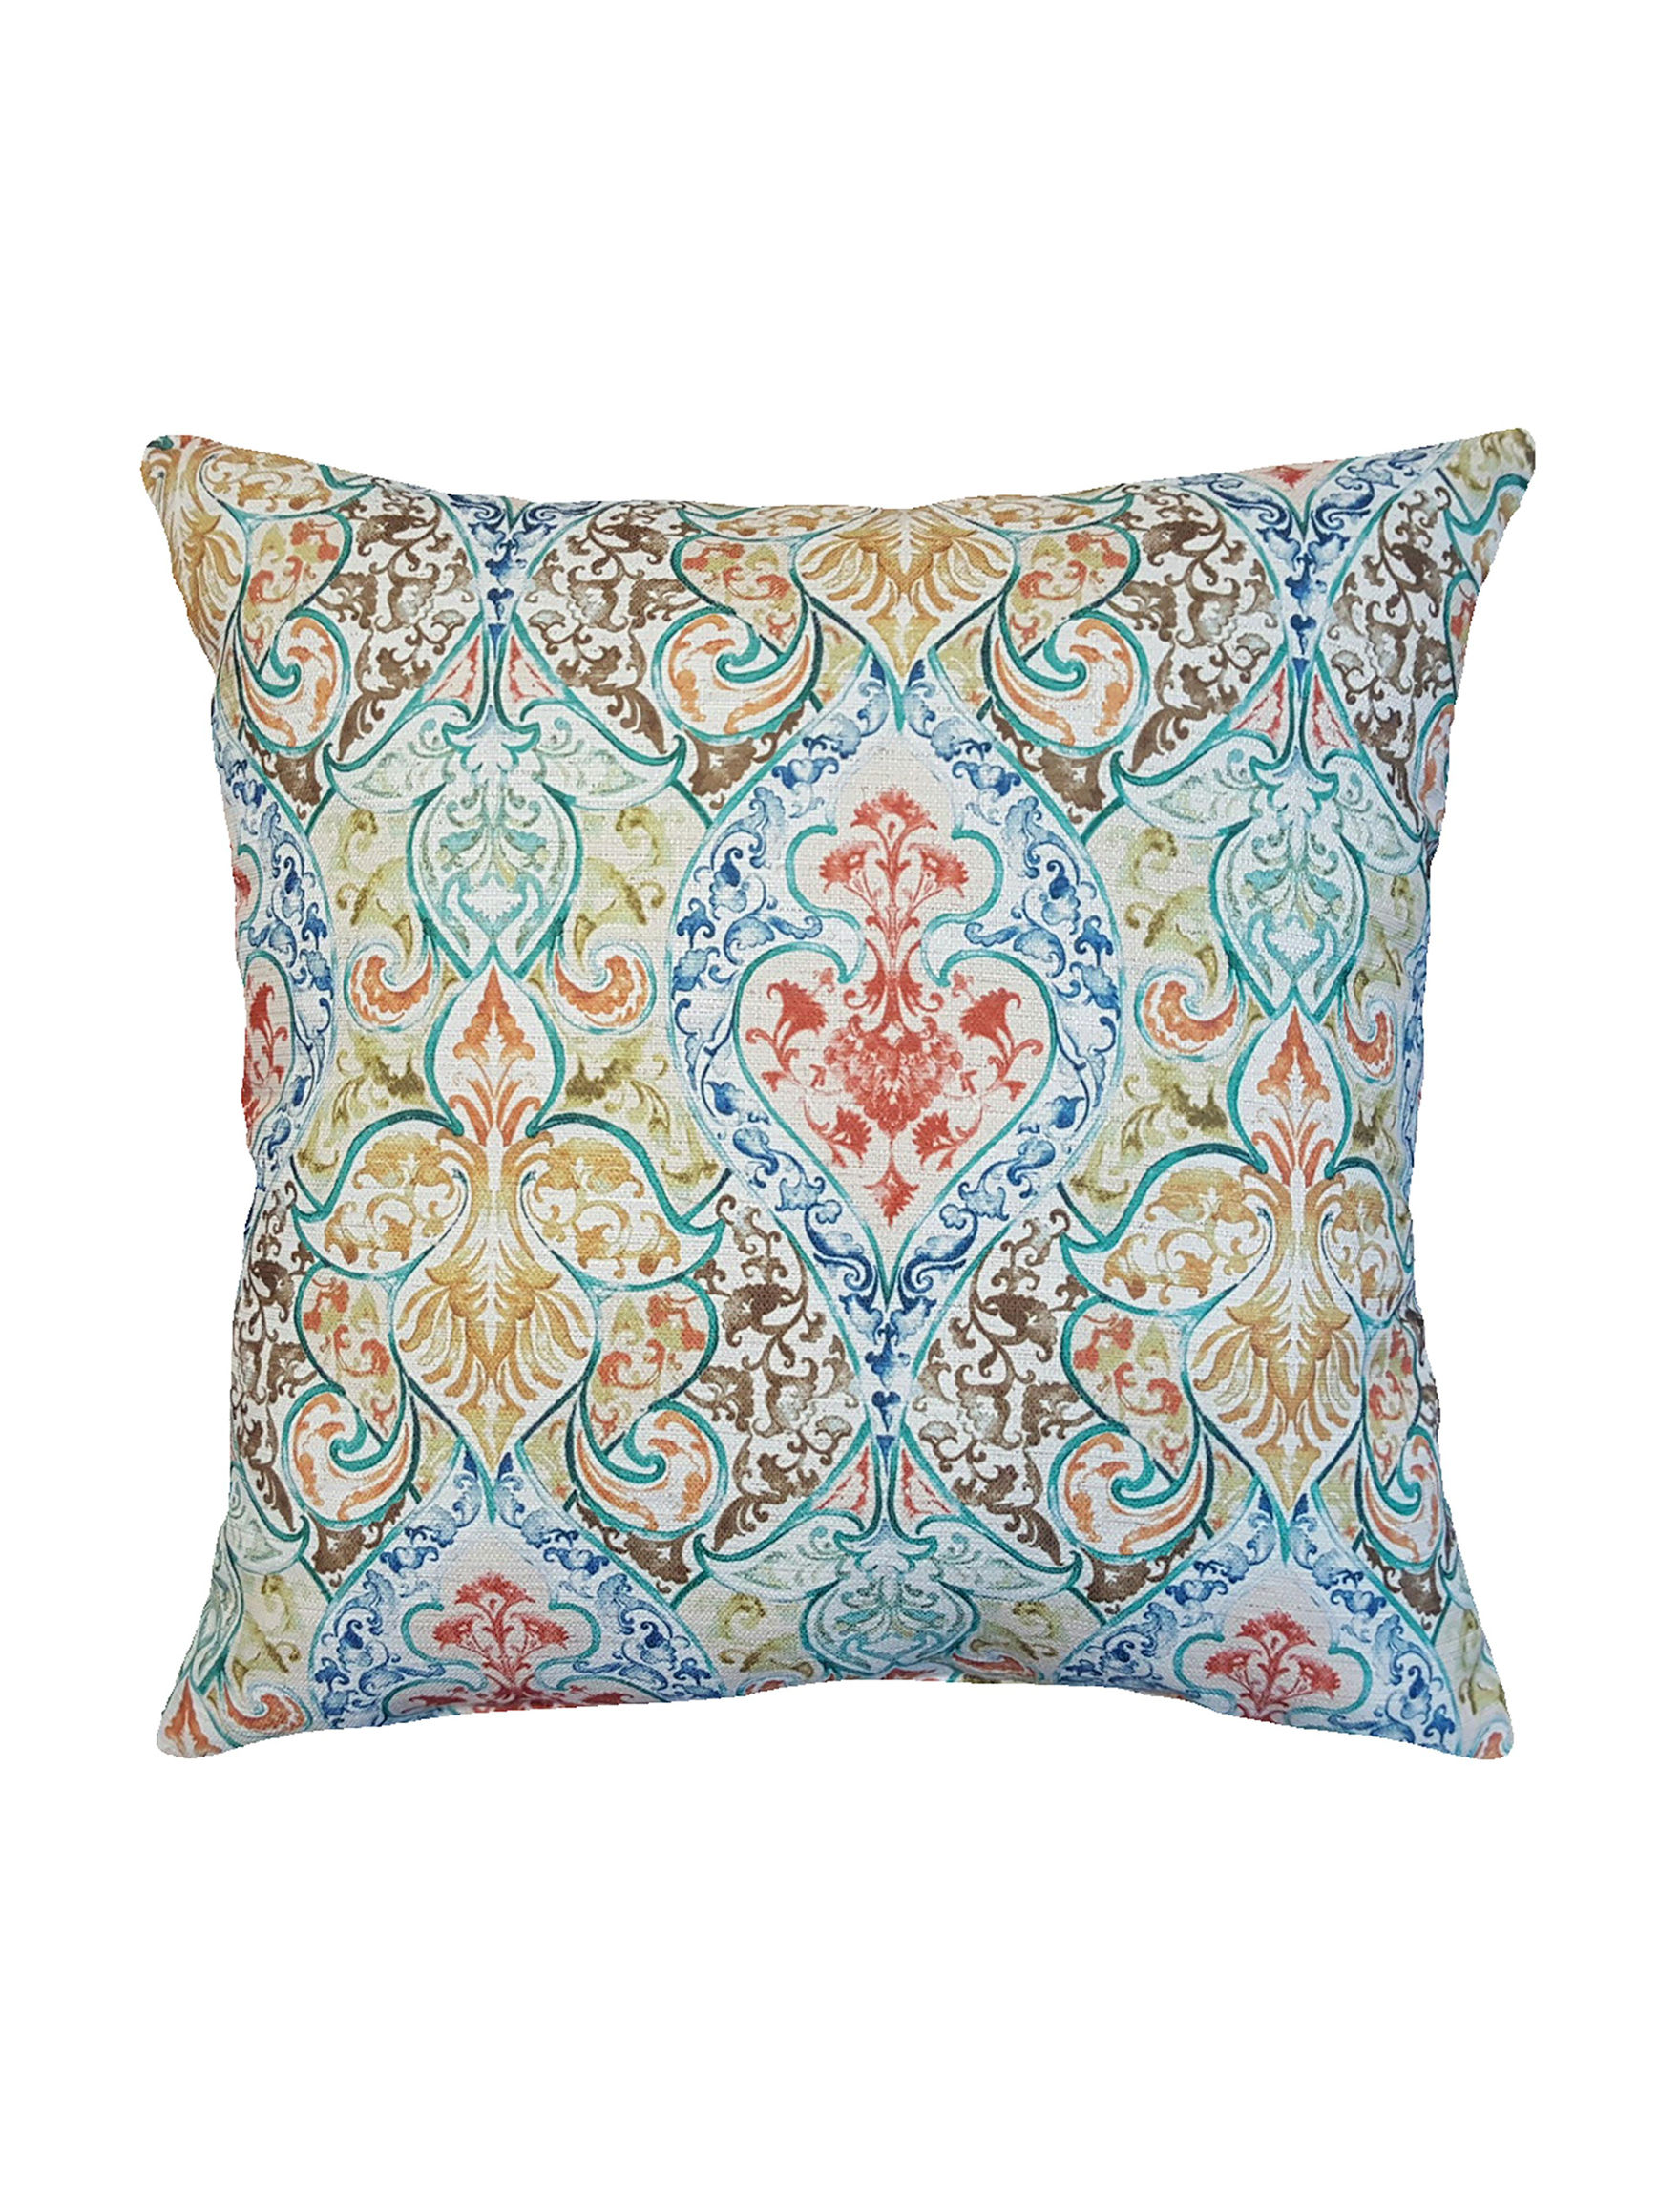 Home Fashions International Multi Decorative Pillows Outdoor Decor